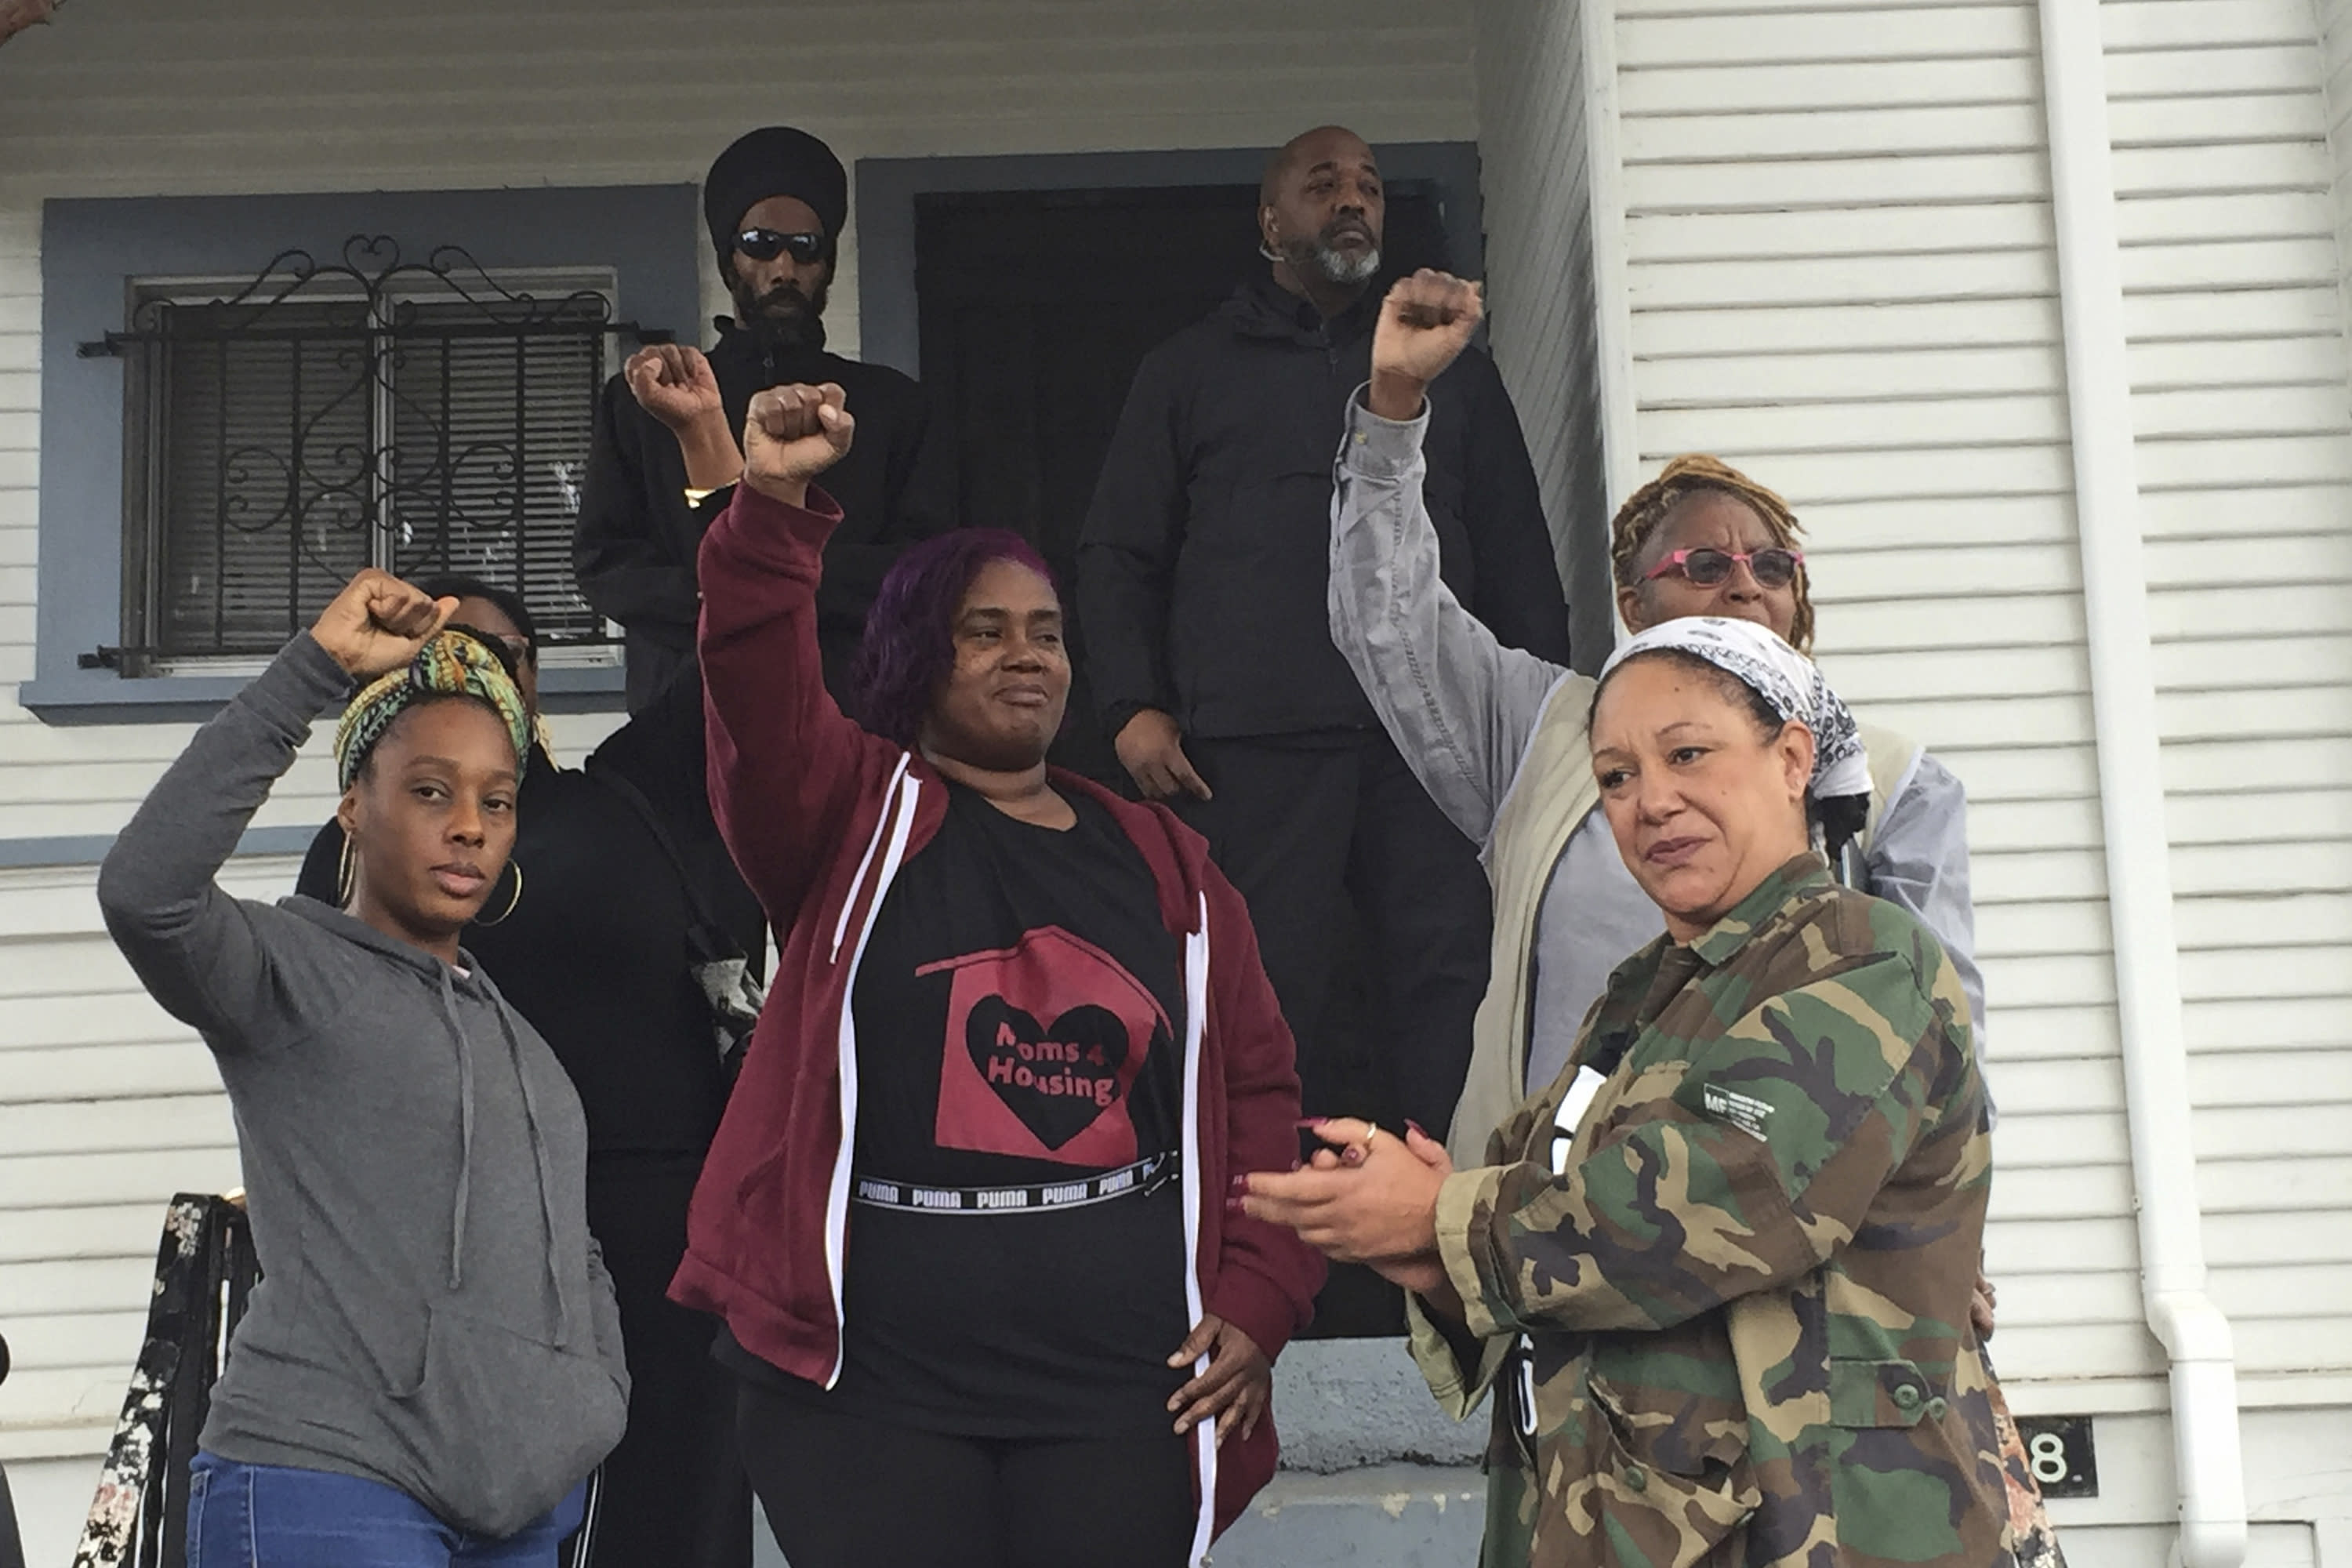 """In this Dec. 6, 2019 photo, Moms 4 Housing member Dominique Walker, 34, left, activist and 2018 Oakland mayoral candidate Cat Brooks, right, and other activists react as supporters chant """"power to the moms"""" outside a home in West Oakland, Calif. Walker and other homeless women took over the vacant house and moved in last November. They are awaiting a final ruling from a judge on whether they can stay, though Alameda County Superior Court Judge Patrick McKinney has tentatively ruled in favor of the property owner, Wedgewood Inc.(Marissa Kendal/Bay Area News Group via AP)"""